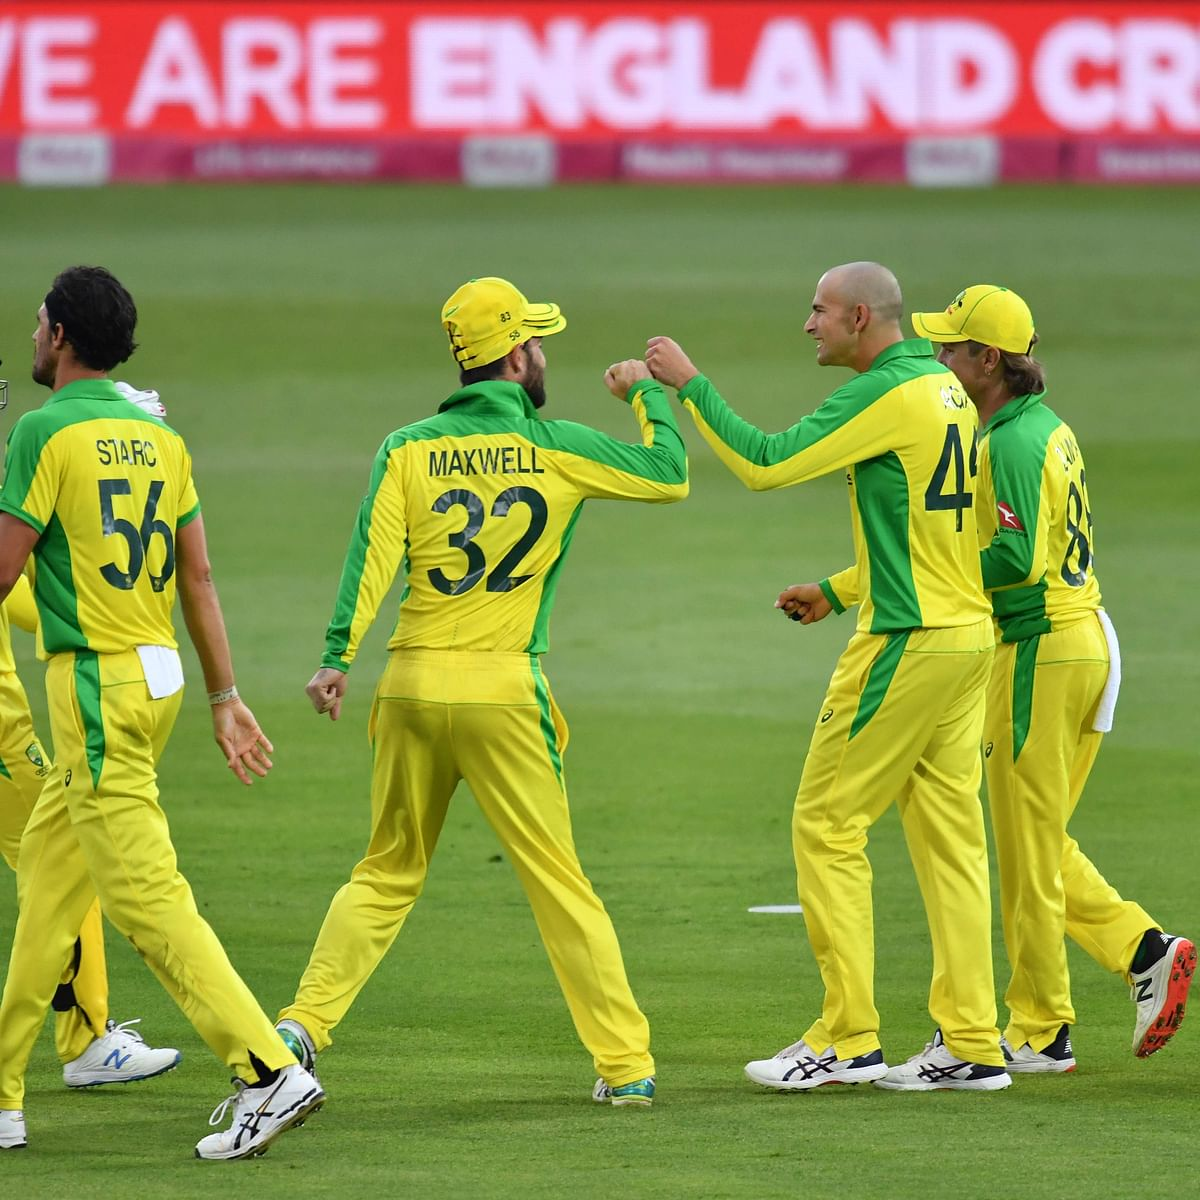 Australia earns consolation T20 win against England, regains top spot in world rankings